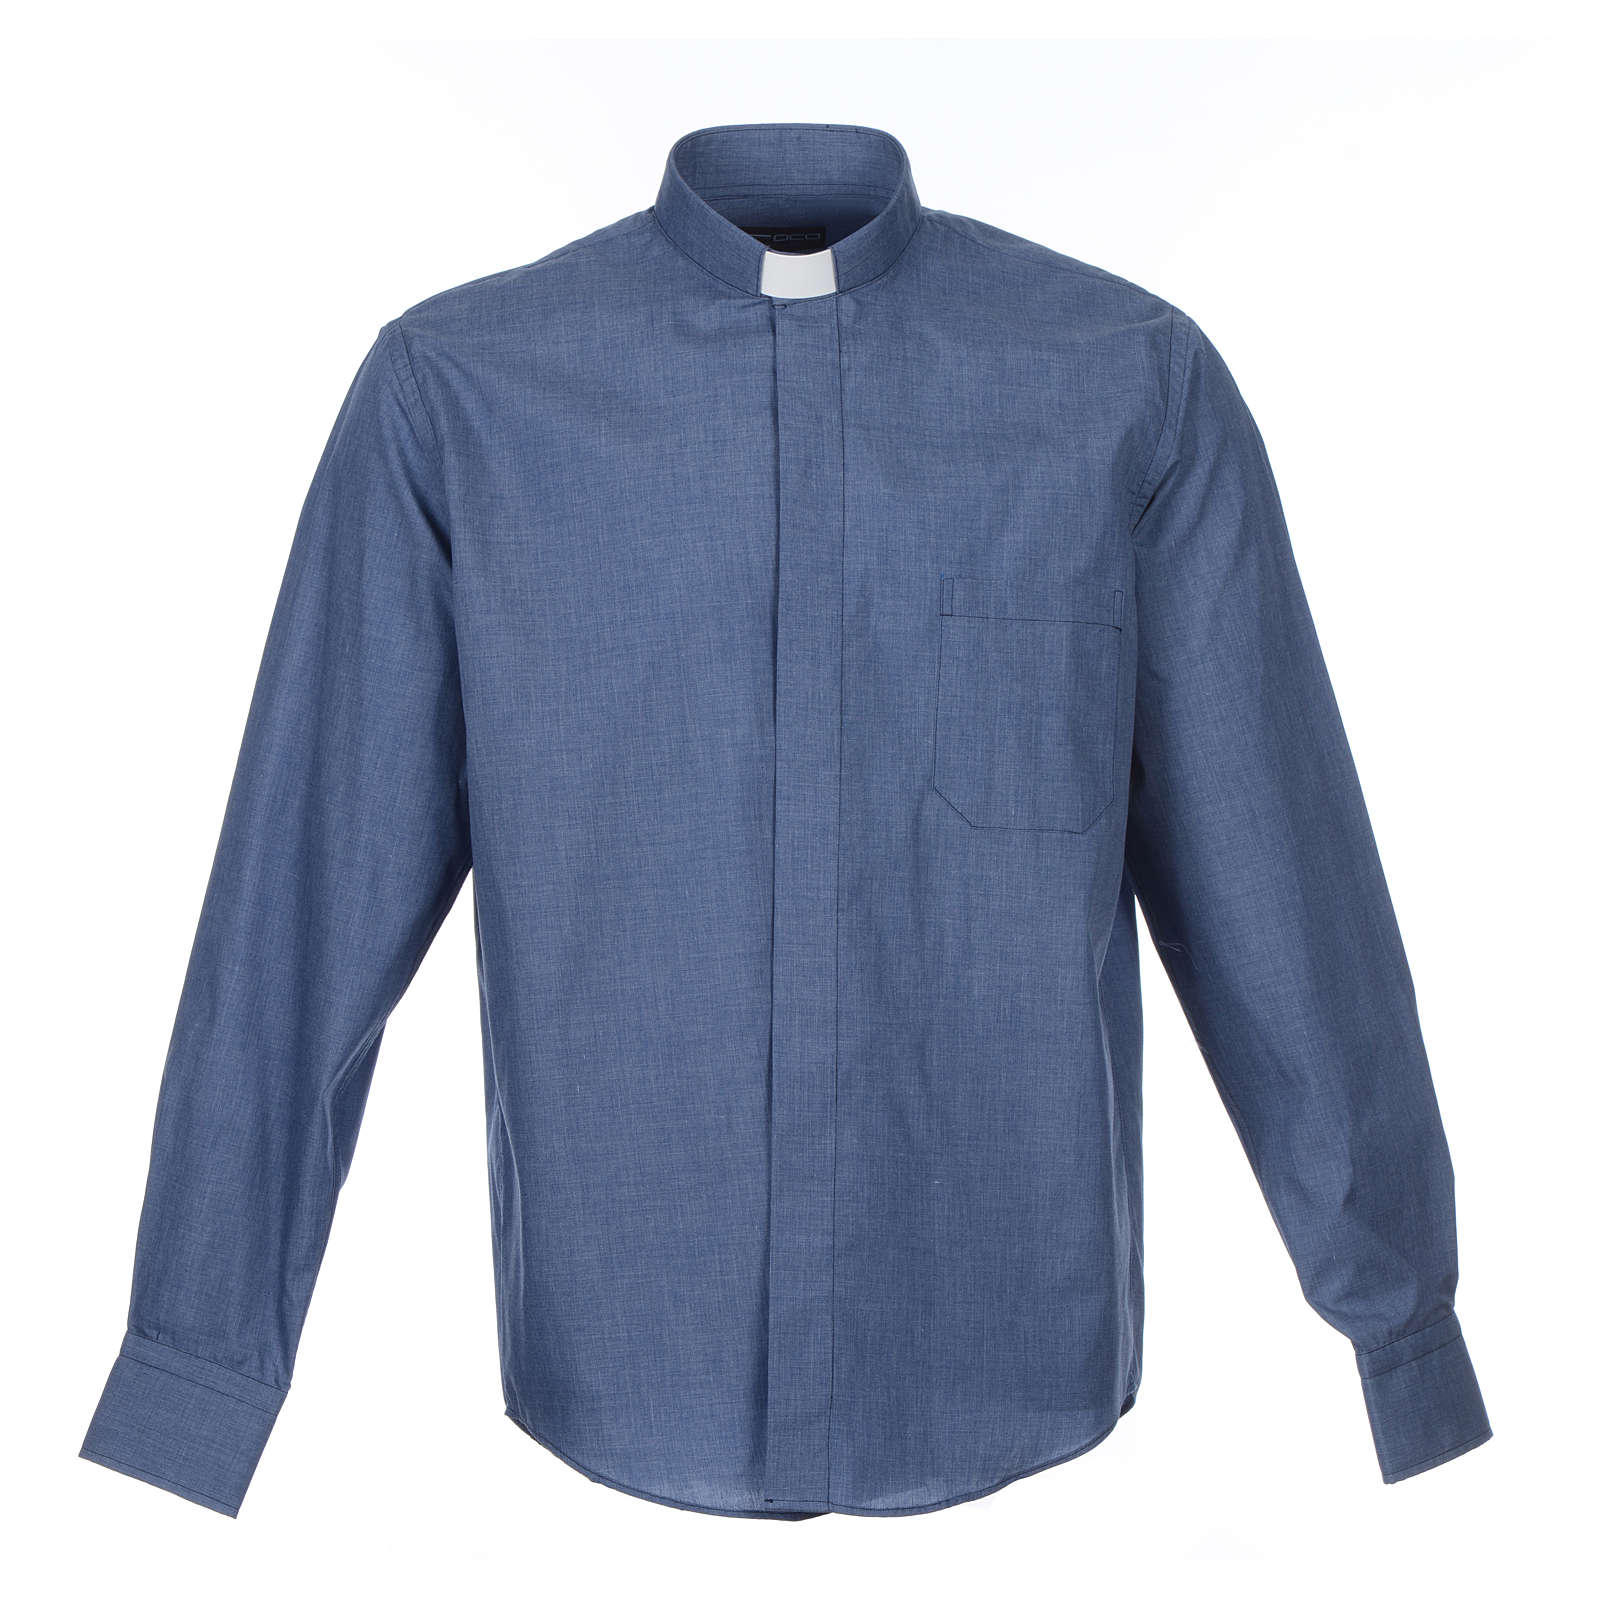 Denim Clergy Shirt long sleeves solid color mixed cotton 4